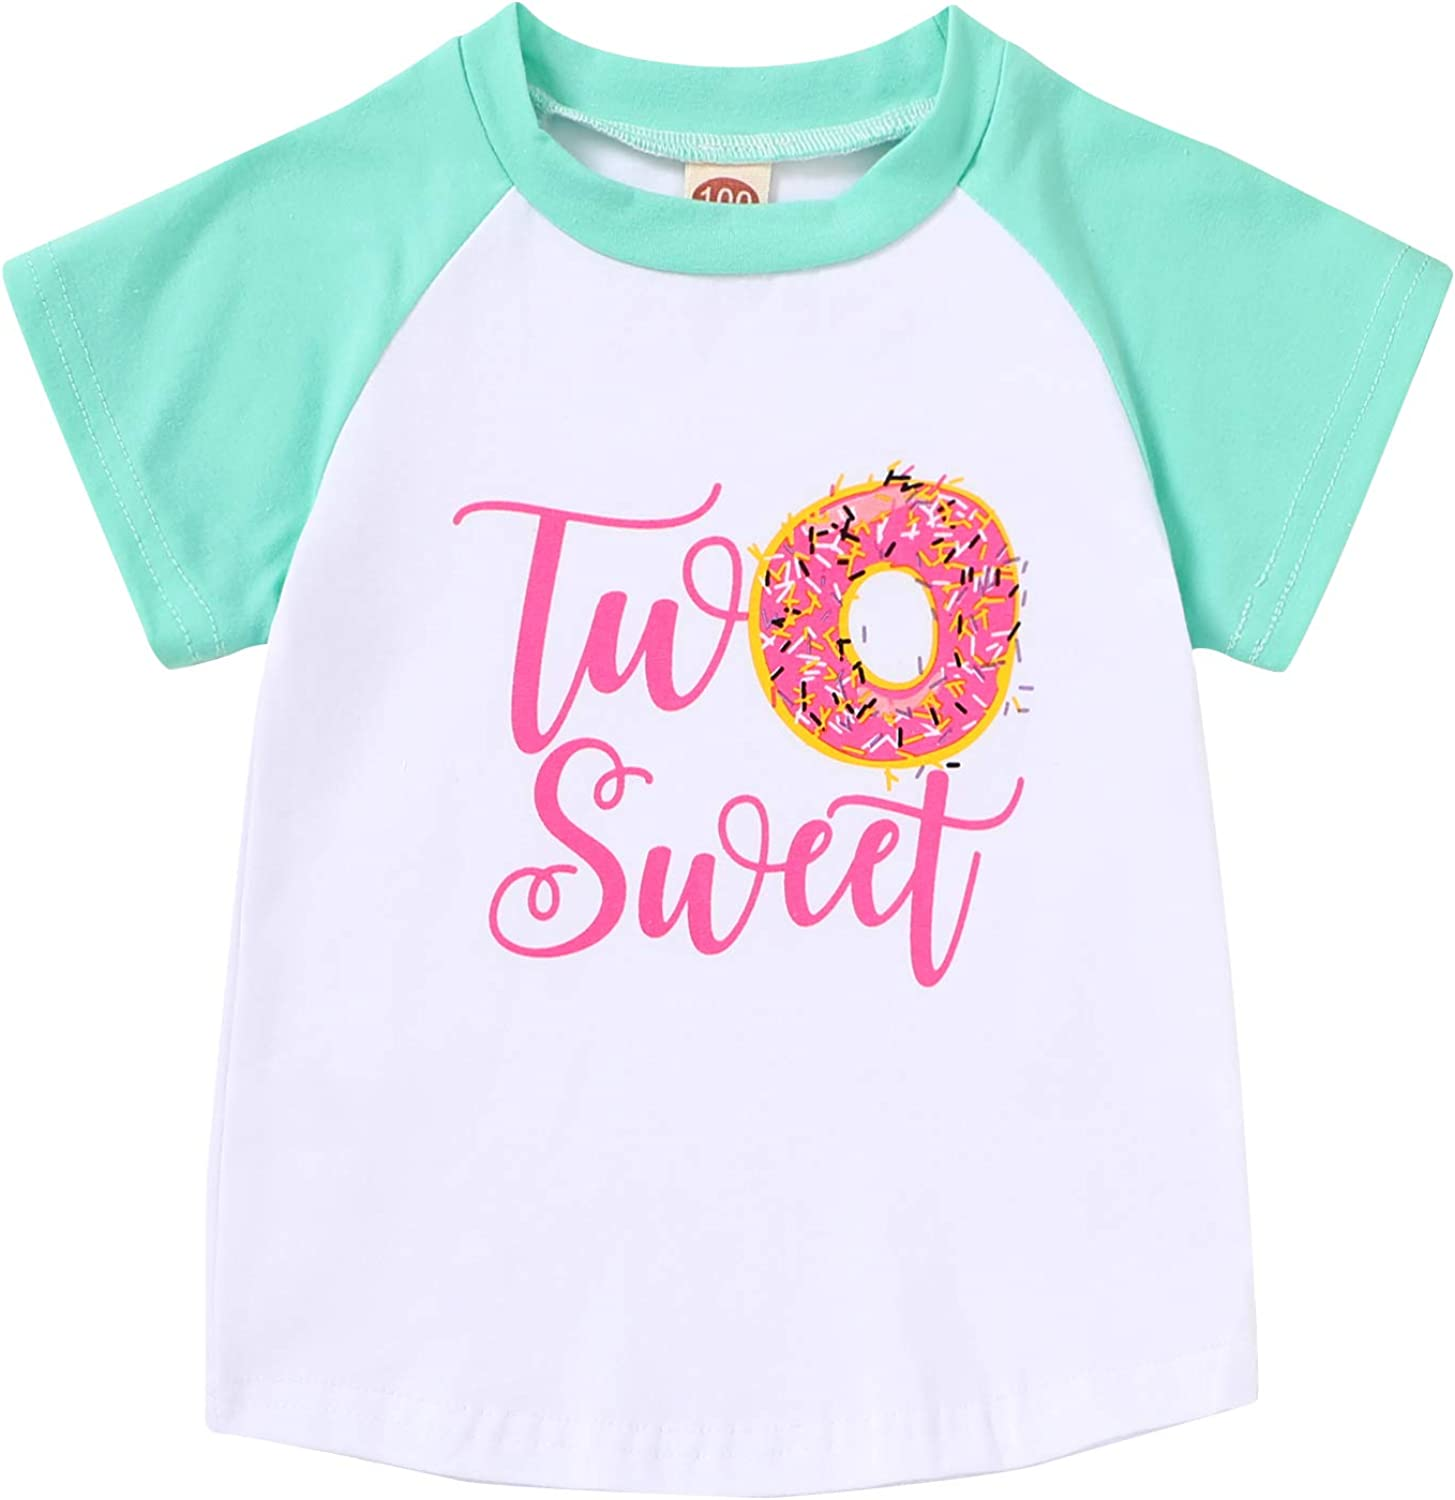 2nd Birthday T-Shirt Baby Girls Two Sweet Popular shop is the lowest price challenge Pink Omaha Mall Doughnut Tees Sum